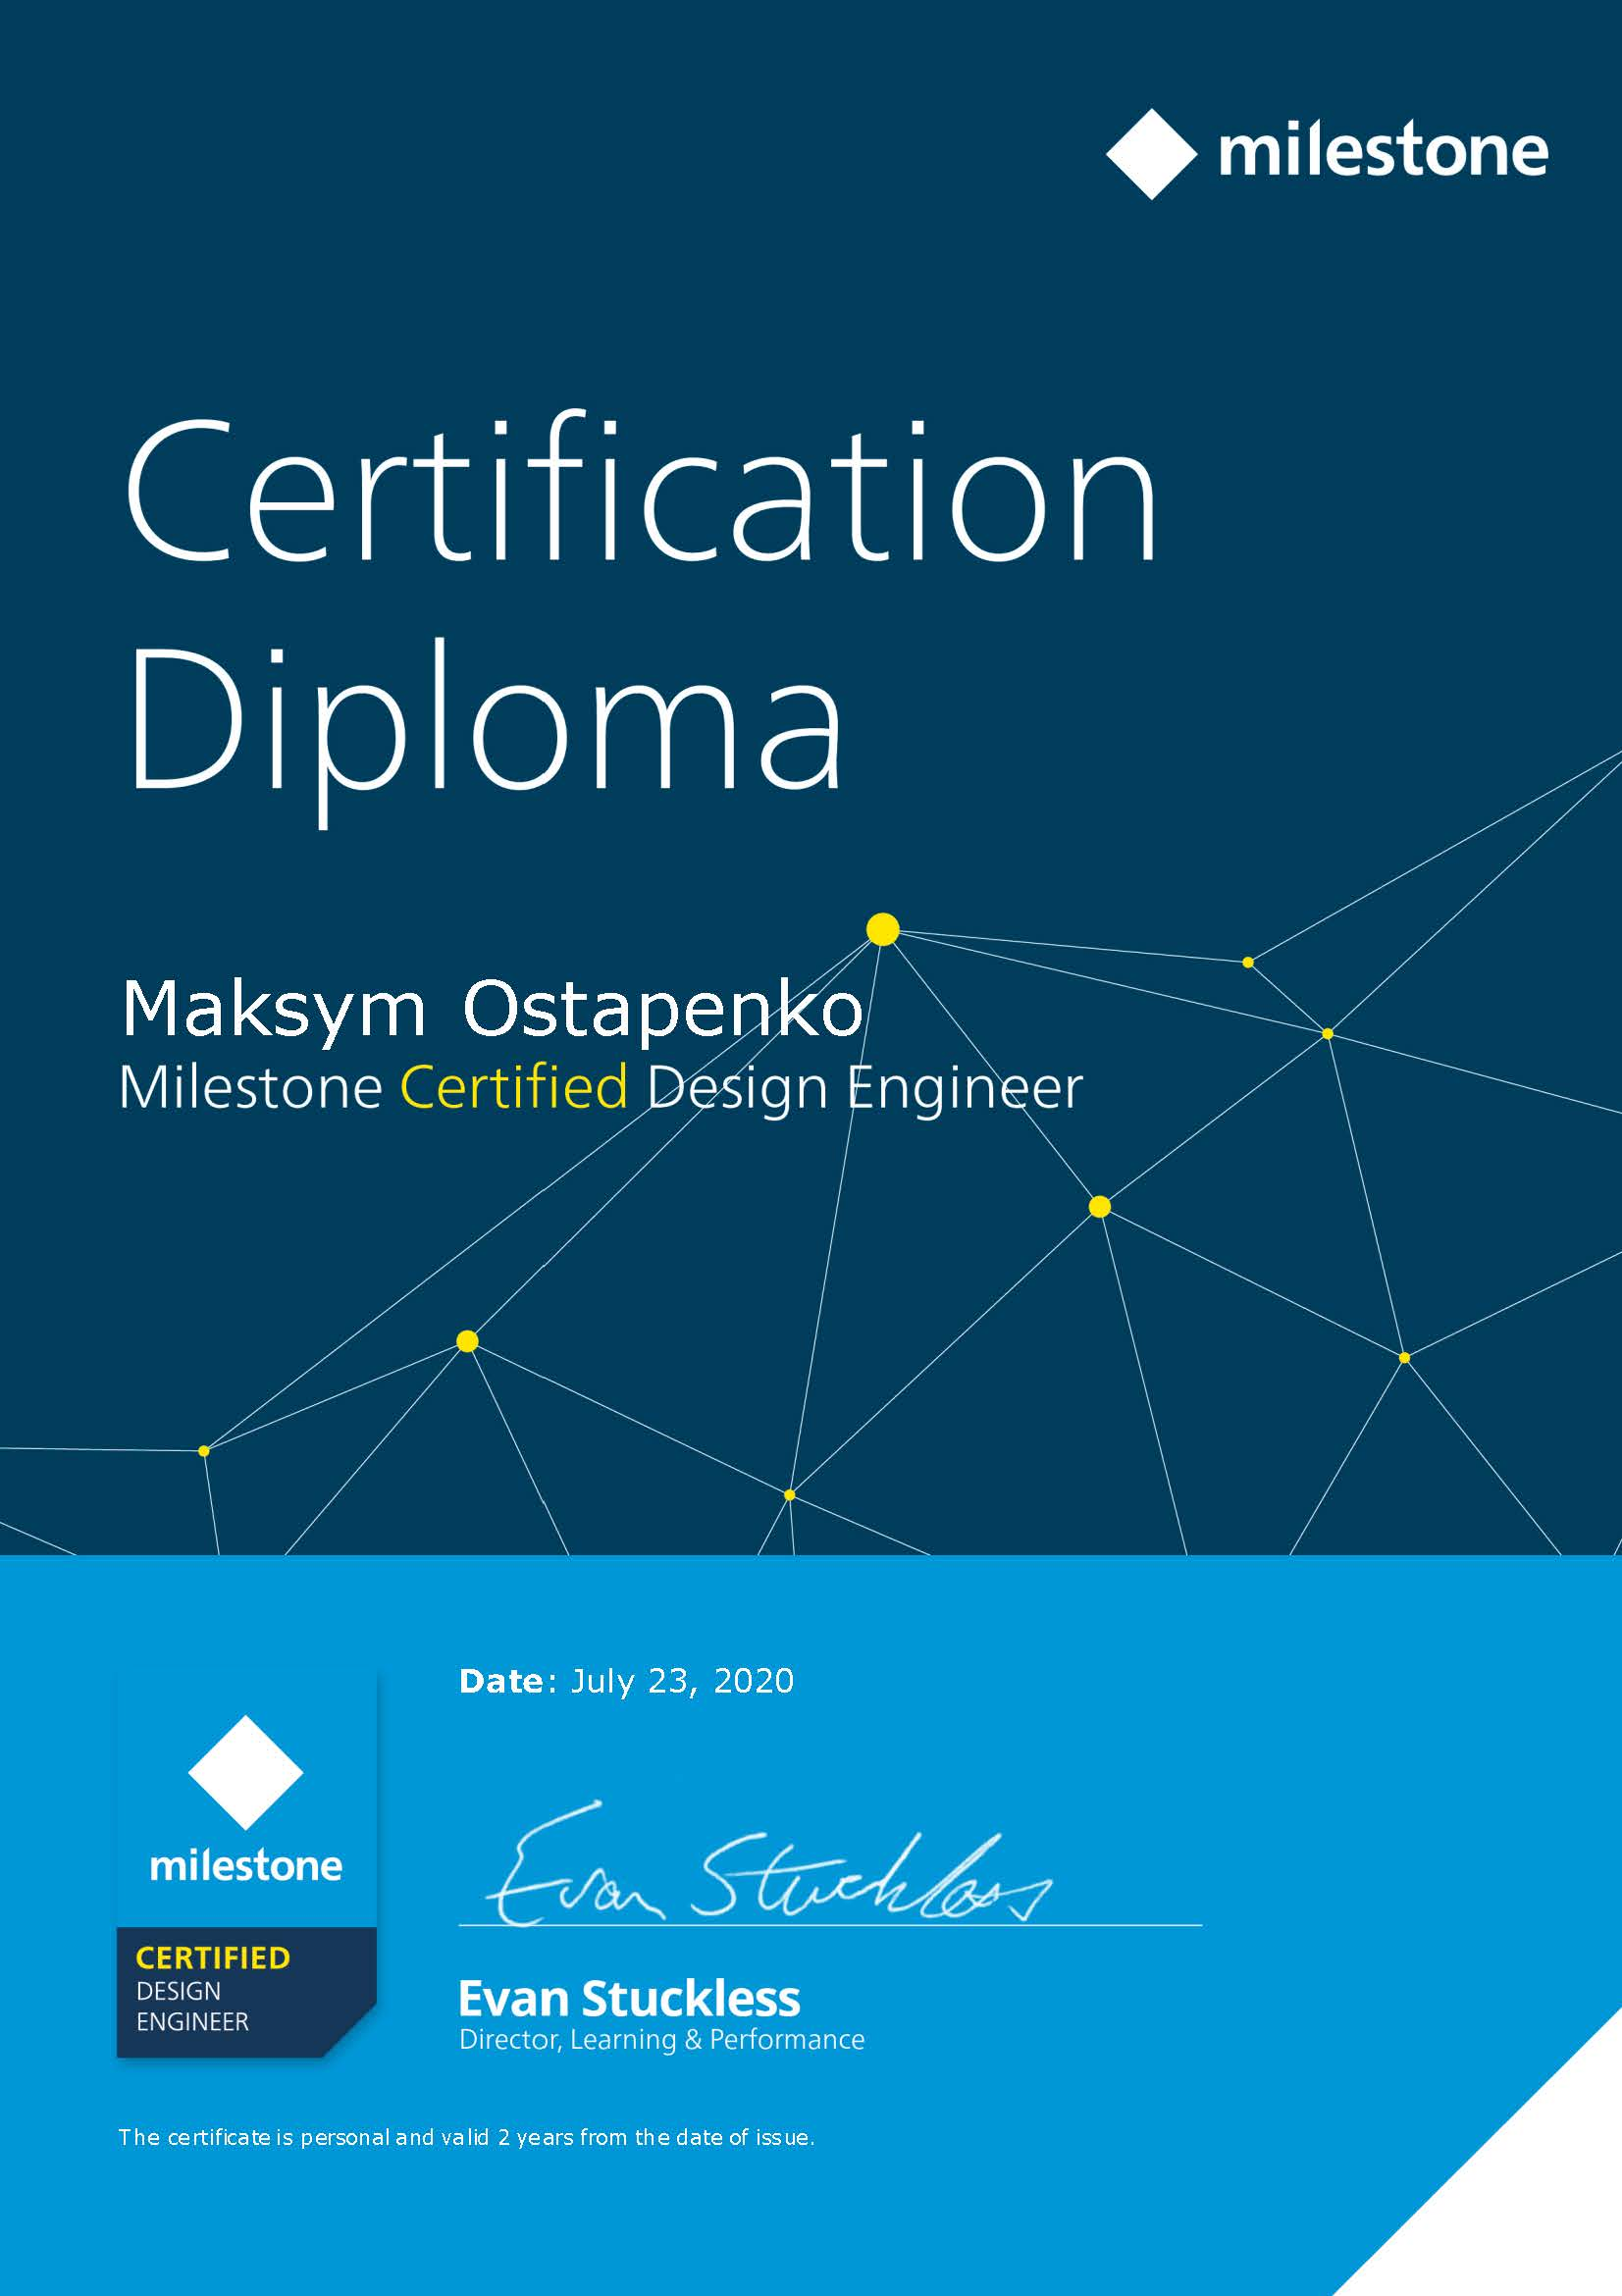 Milestone_Certified_Design_Engineer